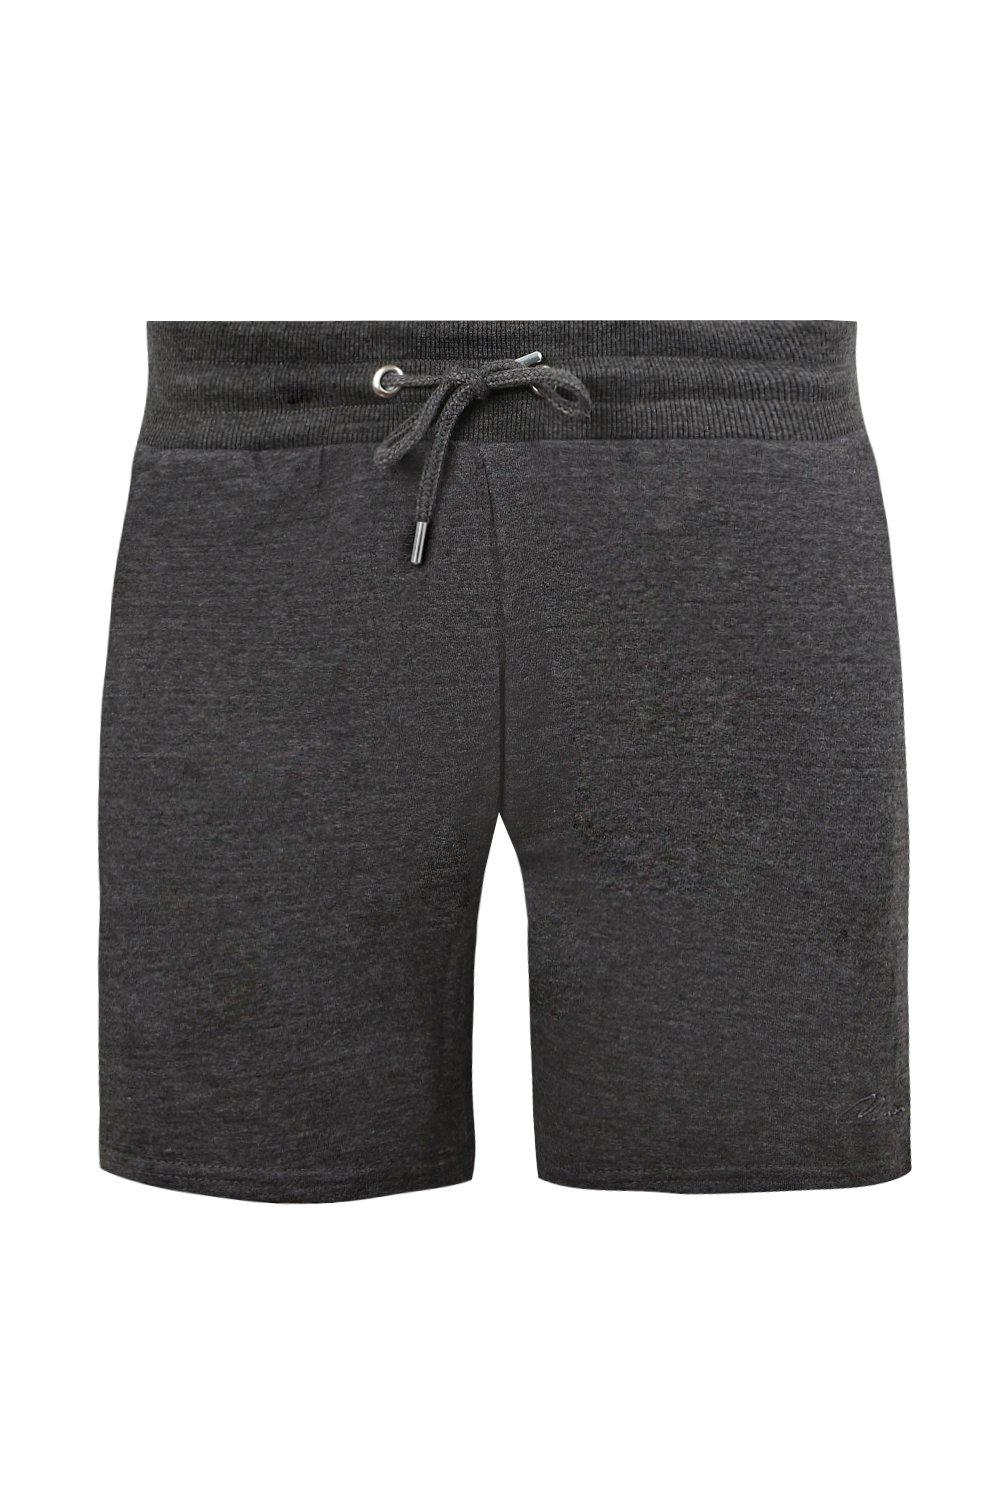 boohooMAN charcoal MAN Signature Embroidered Jersey Short